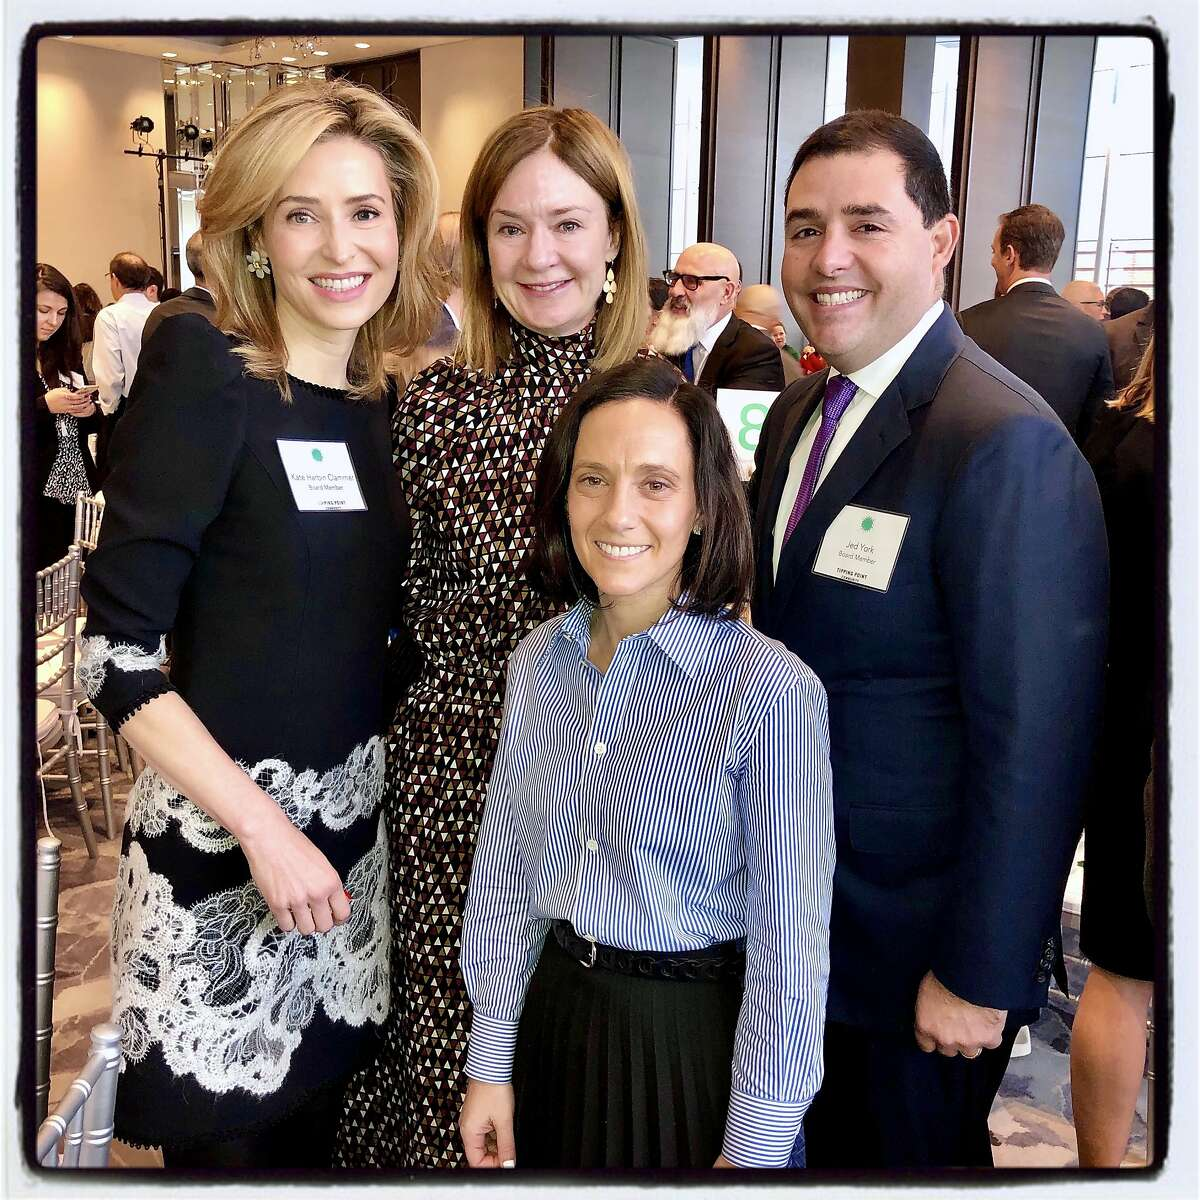 California State Protocol Director Becca Prowda (front) with Tipping Point trustees (from left) Kate Clammer, Katie Schwab Paige and 49ers CEO Jed York. Dec. 13, 2019.